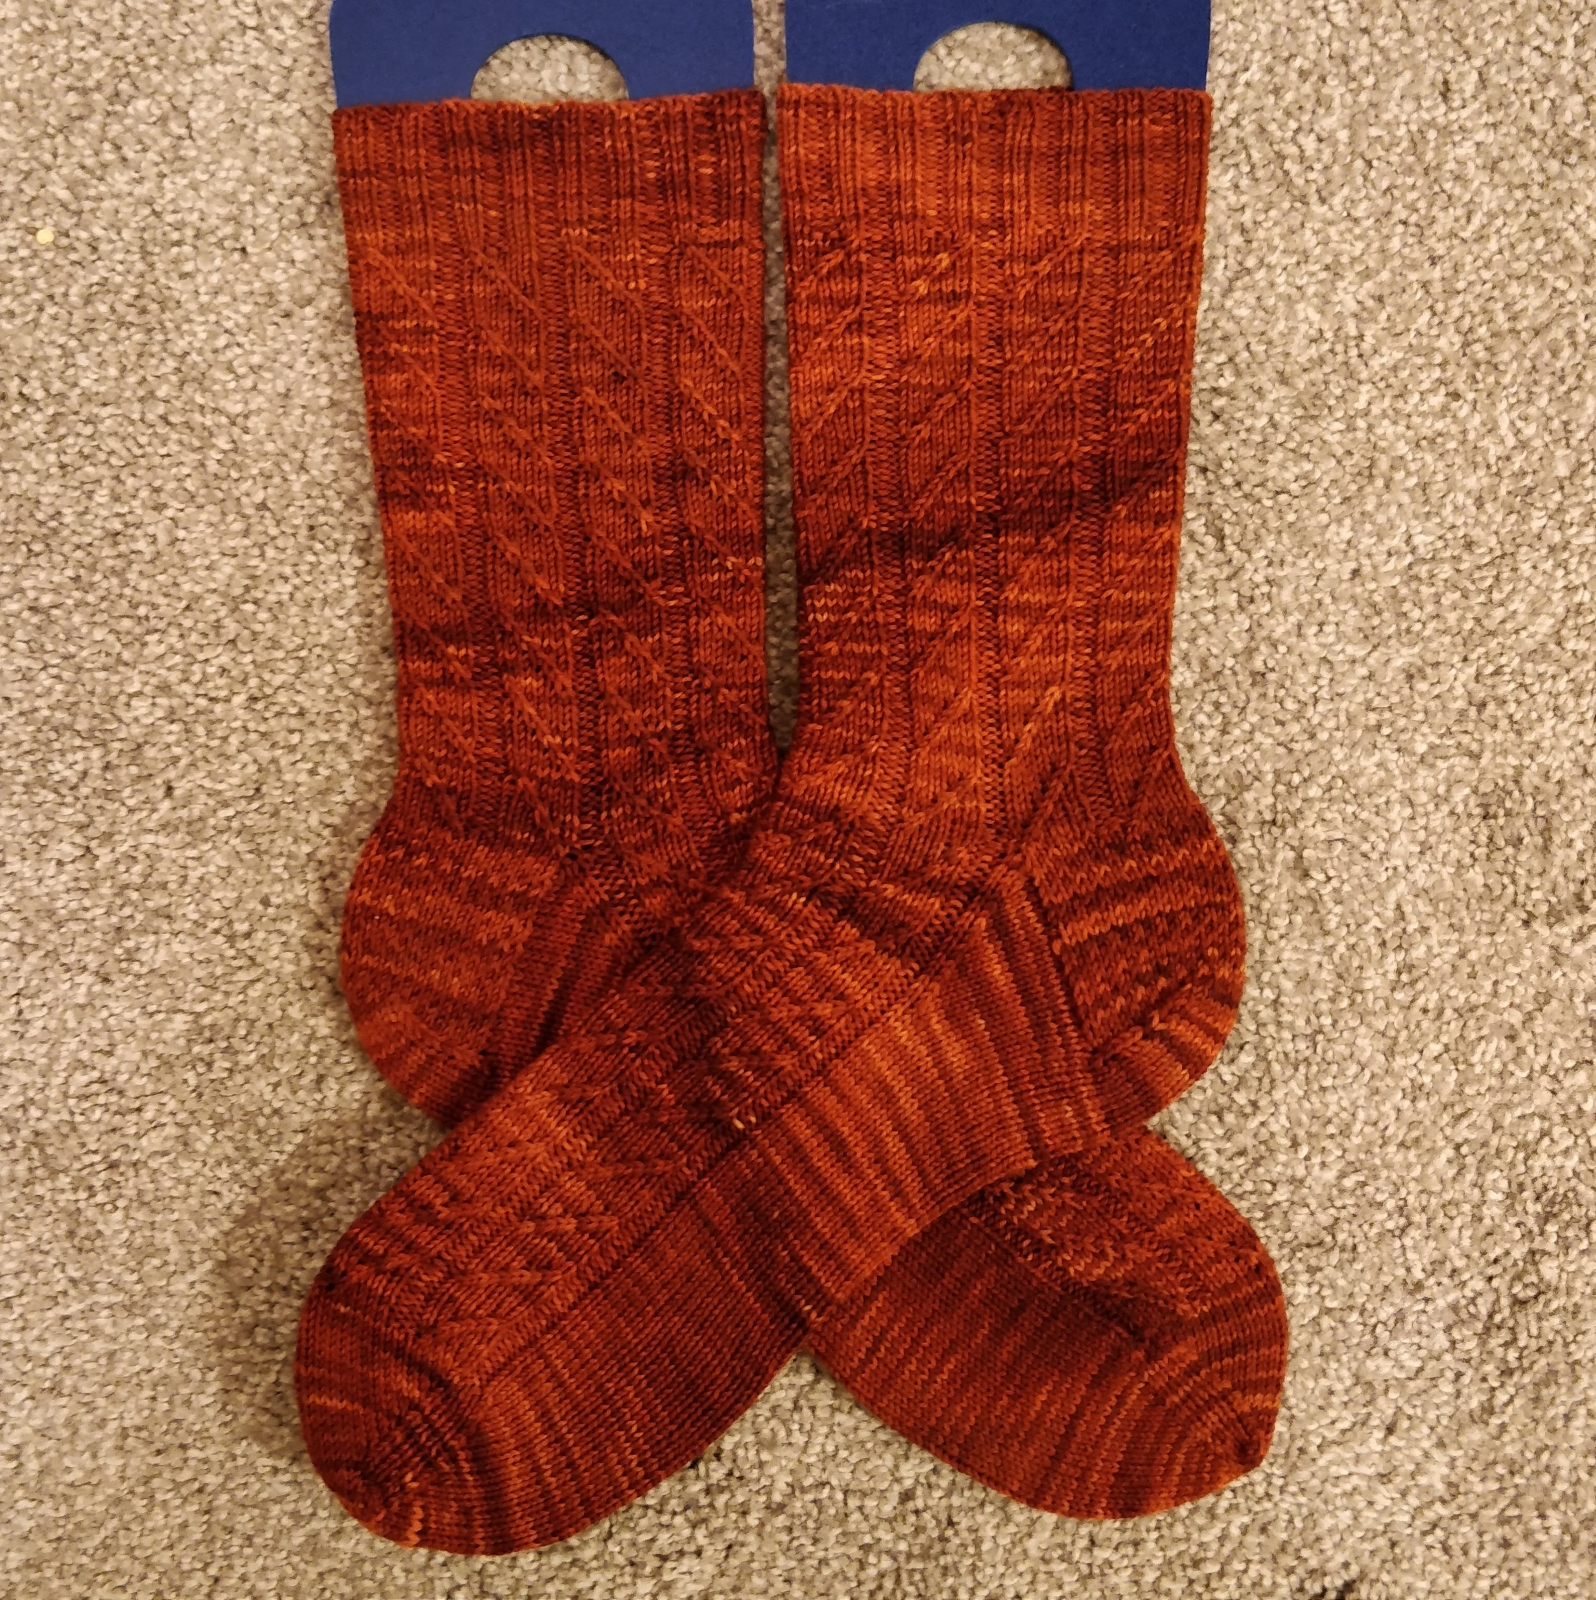 A pair of amber socks